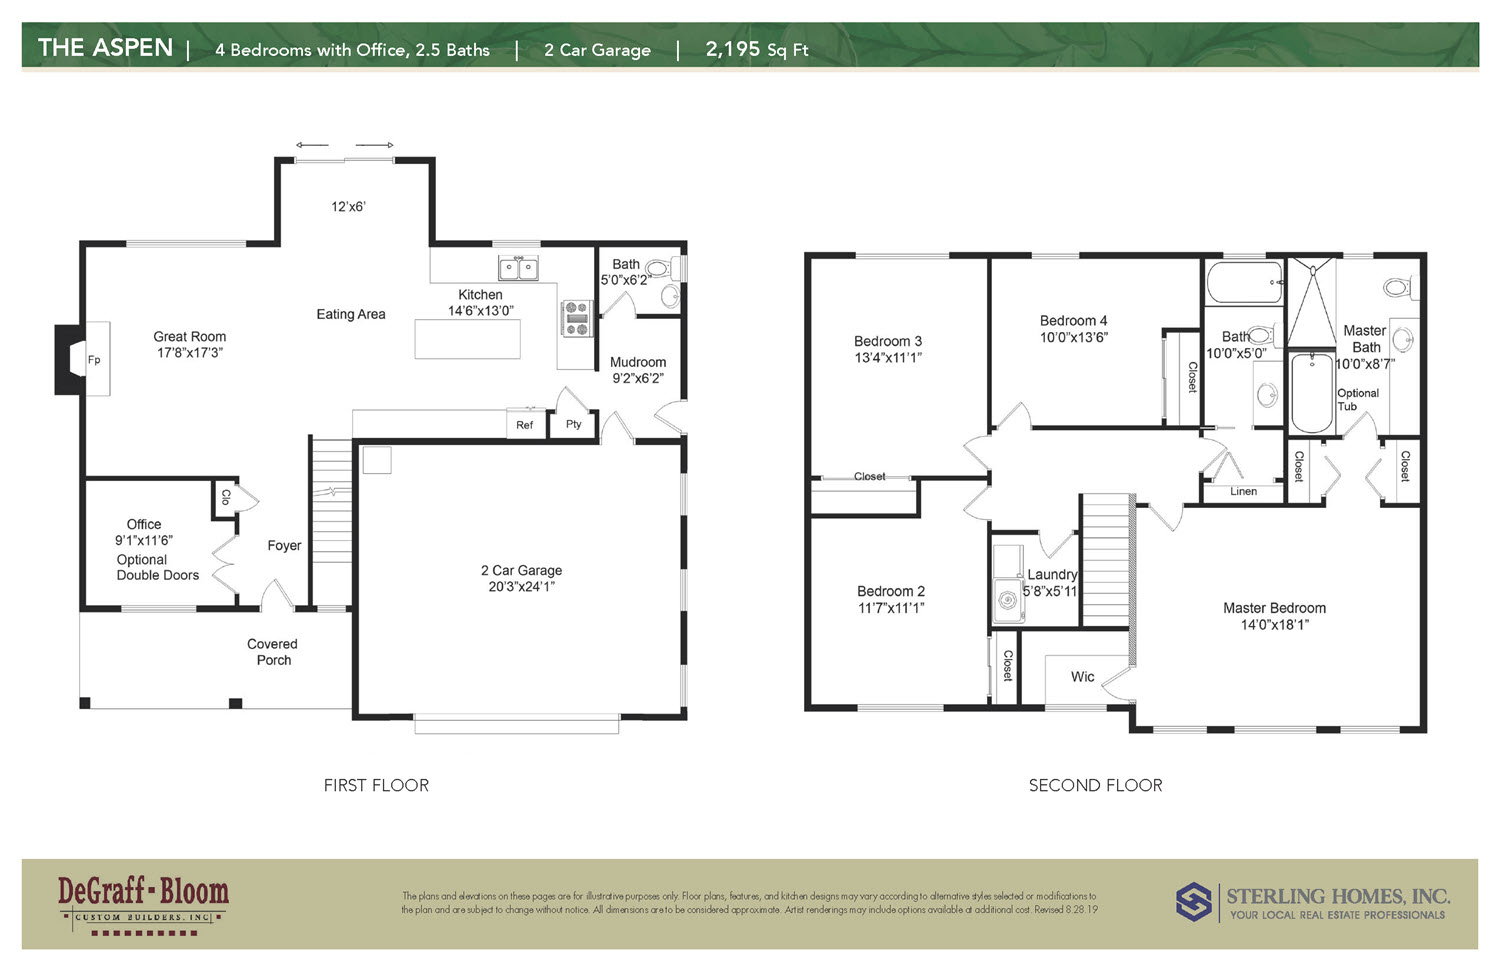 The Aspen Floorplan